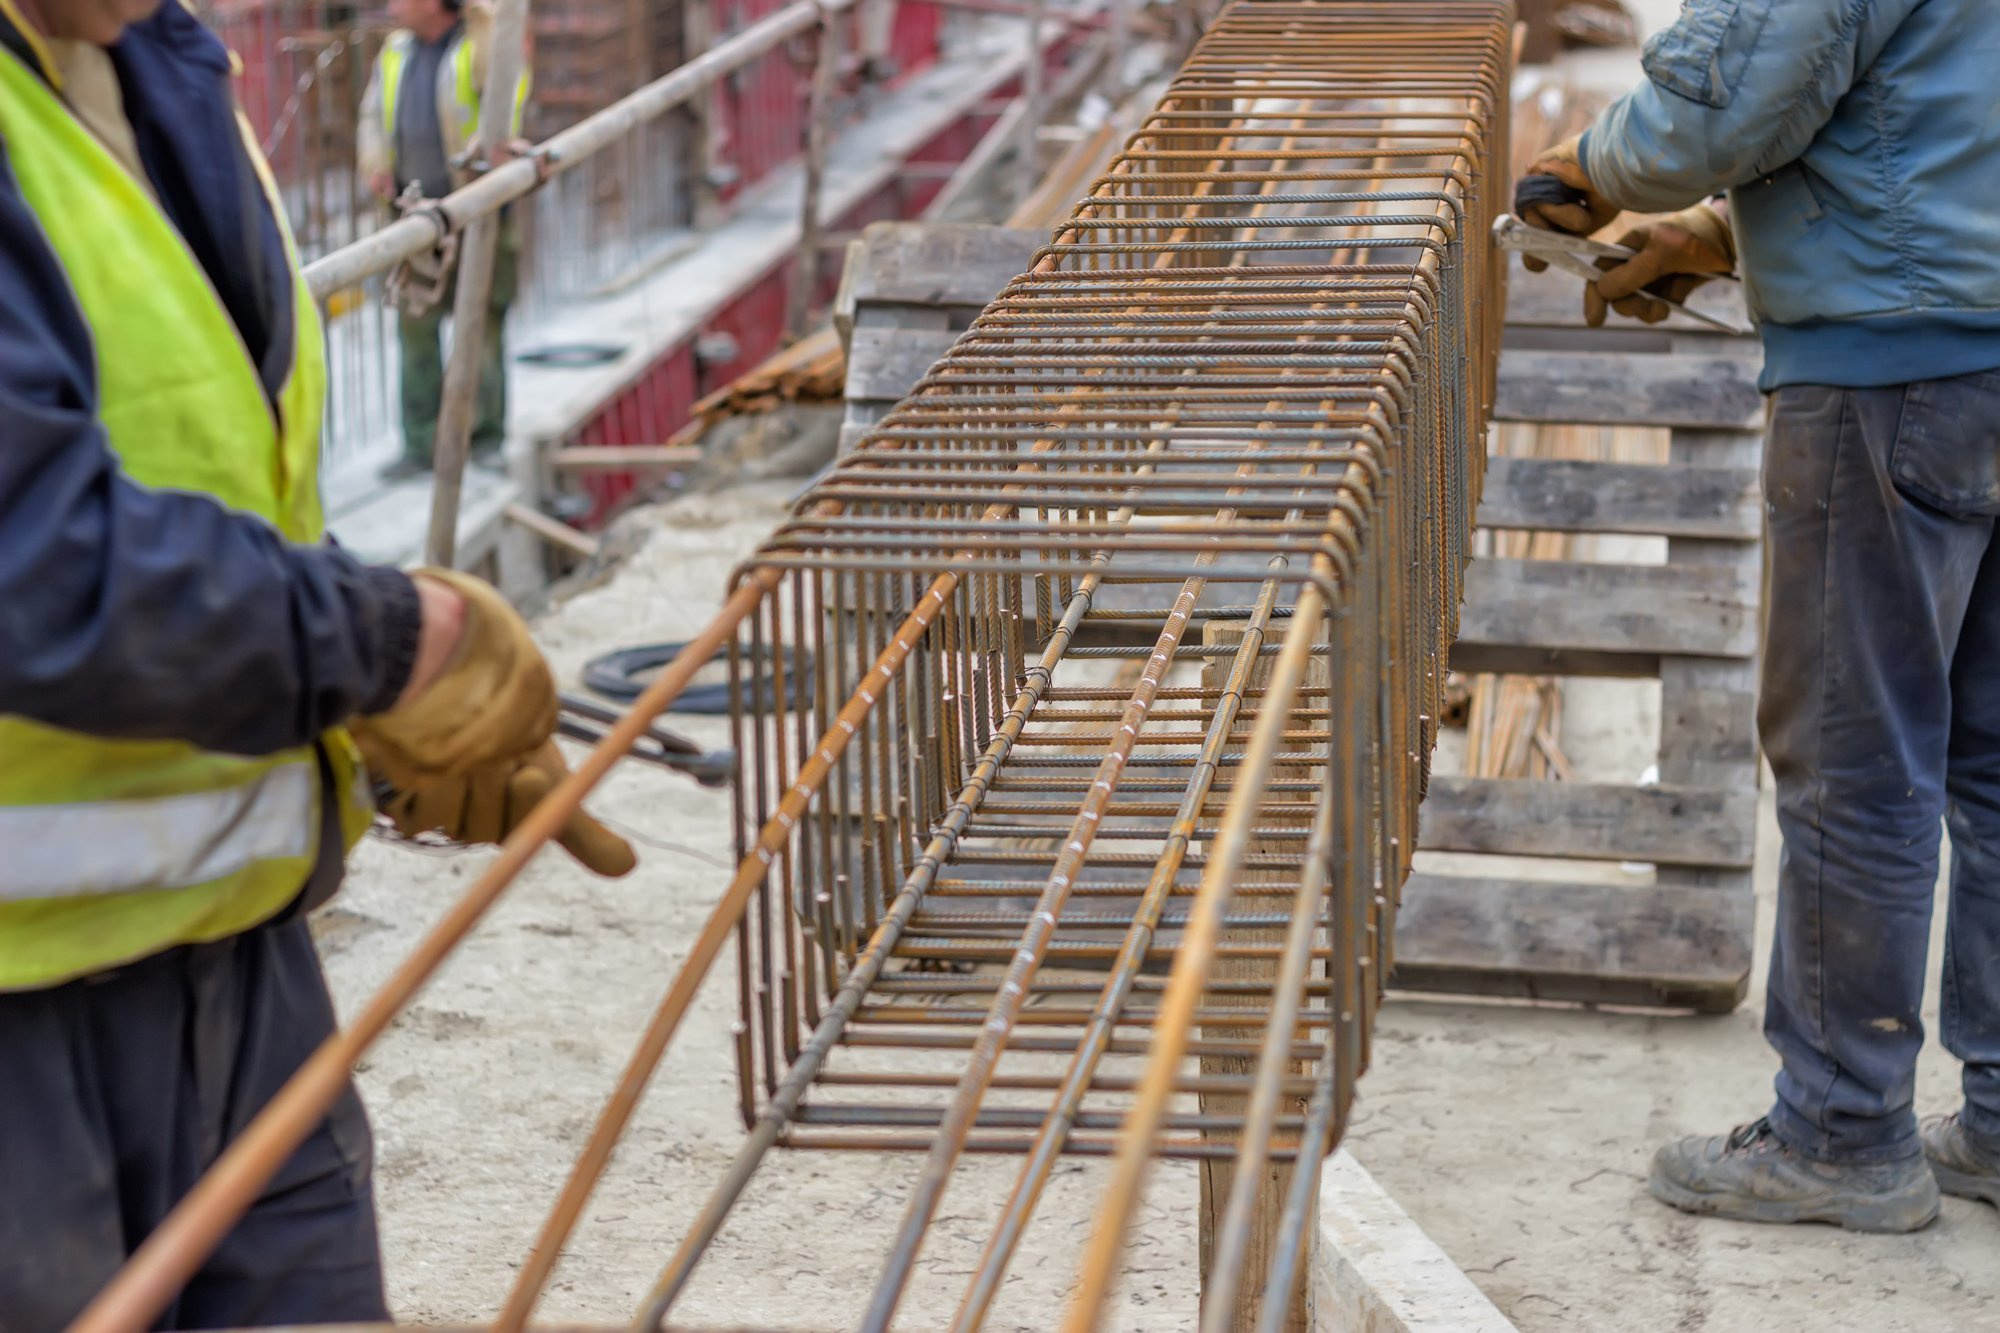 Steel reinforcement cage, beams are fabricated on the ground before being lifted into place. Selective focus on center portion of image.